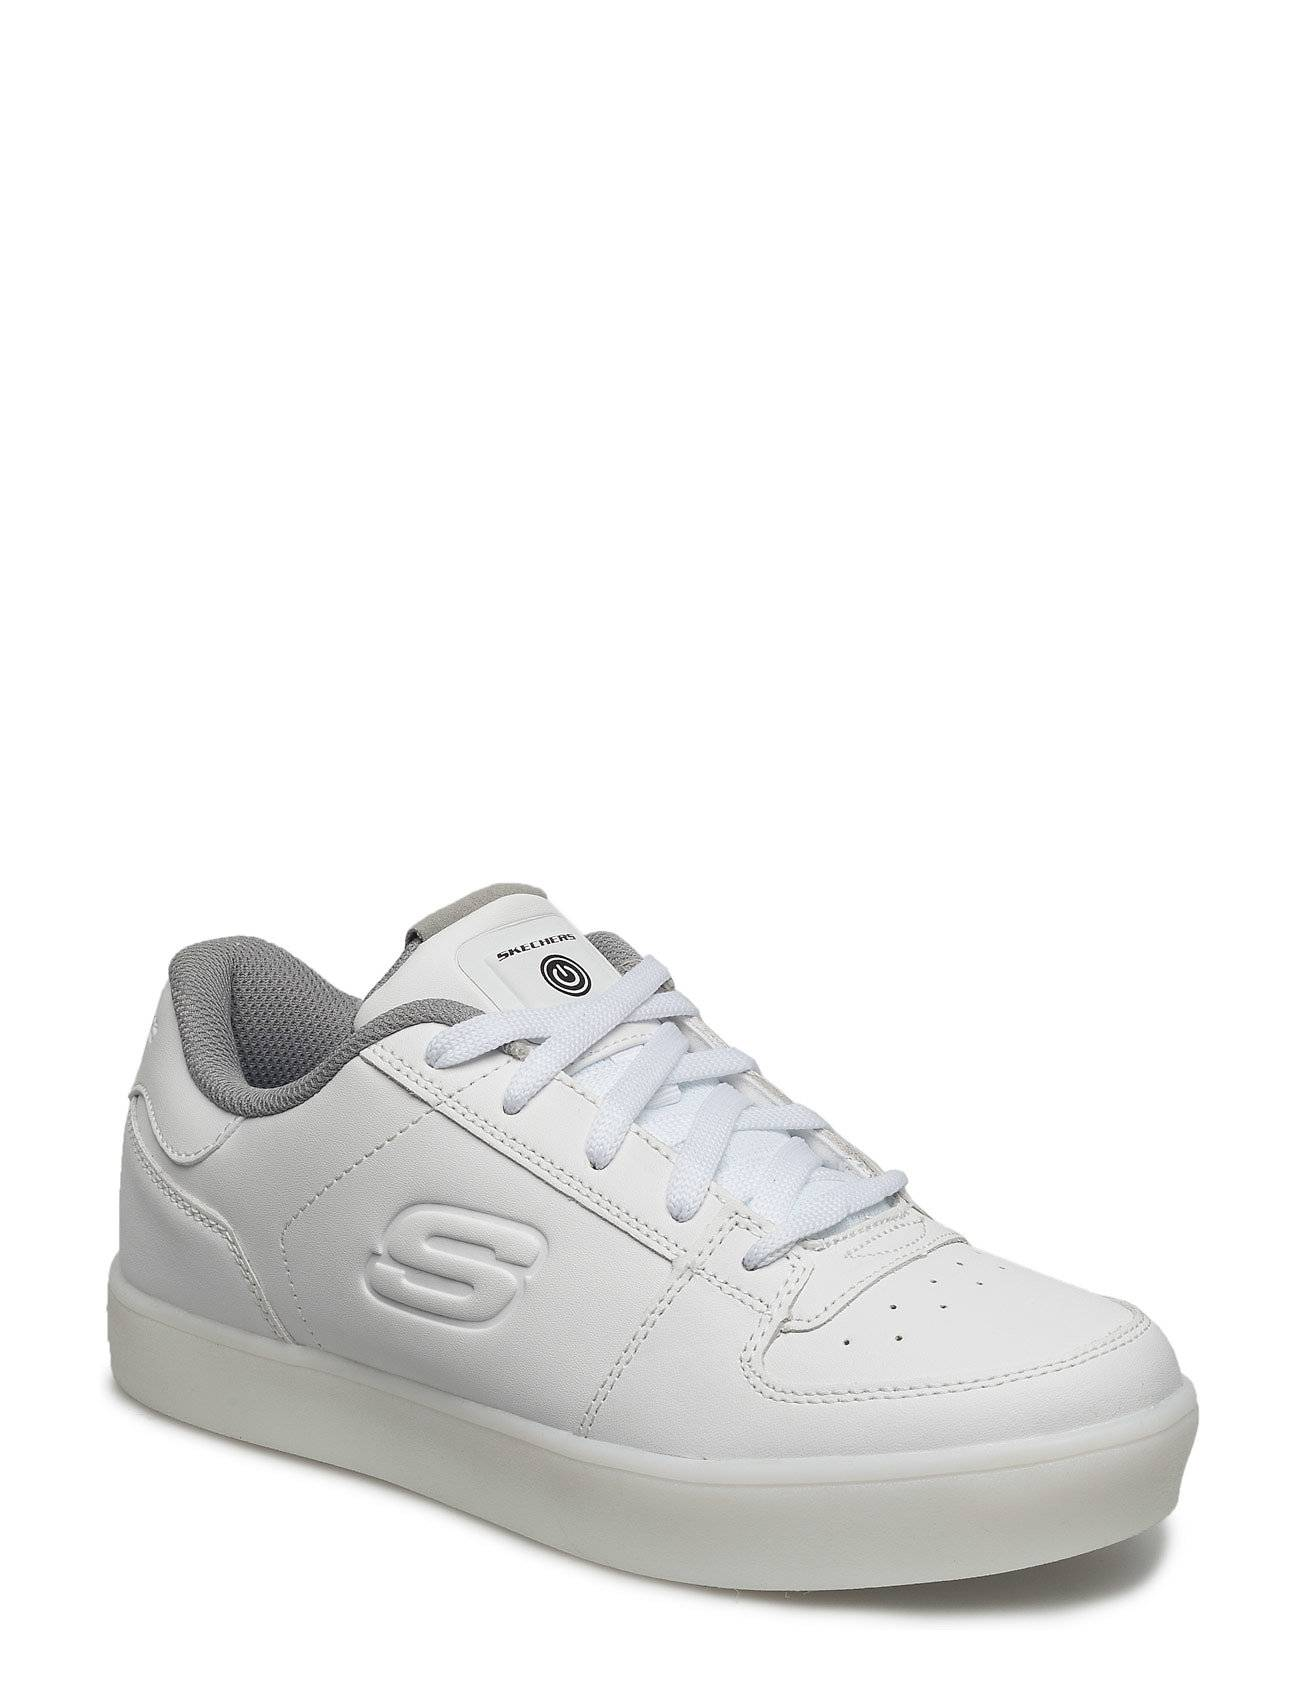 Skechers Boys S Lights - Energy Lights - Elate